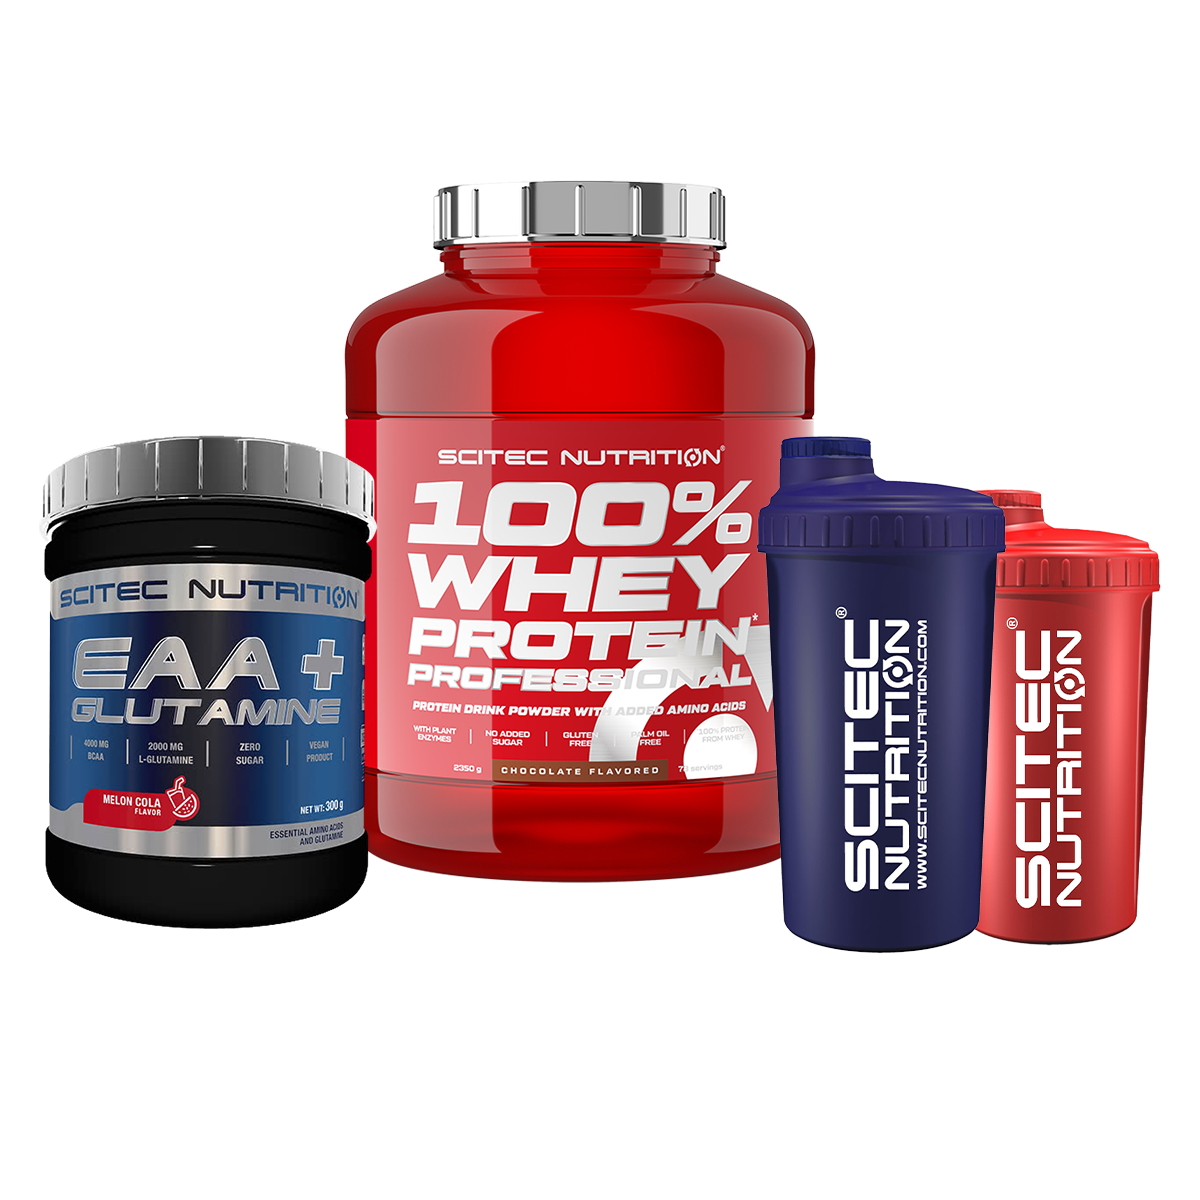 Scitec Nutrition 100% Whey Protein Professional + EAA + Glutamine + Shaker Set